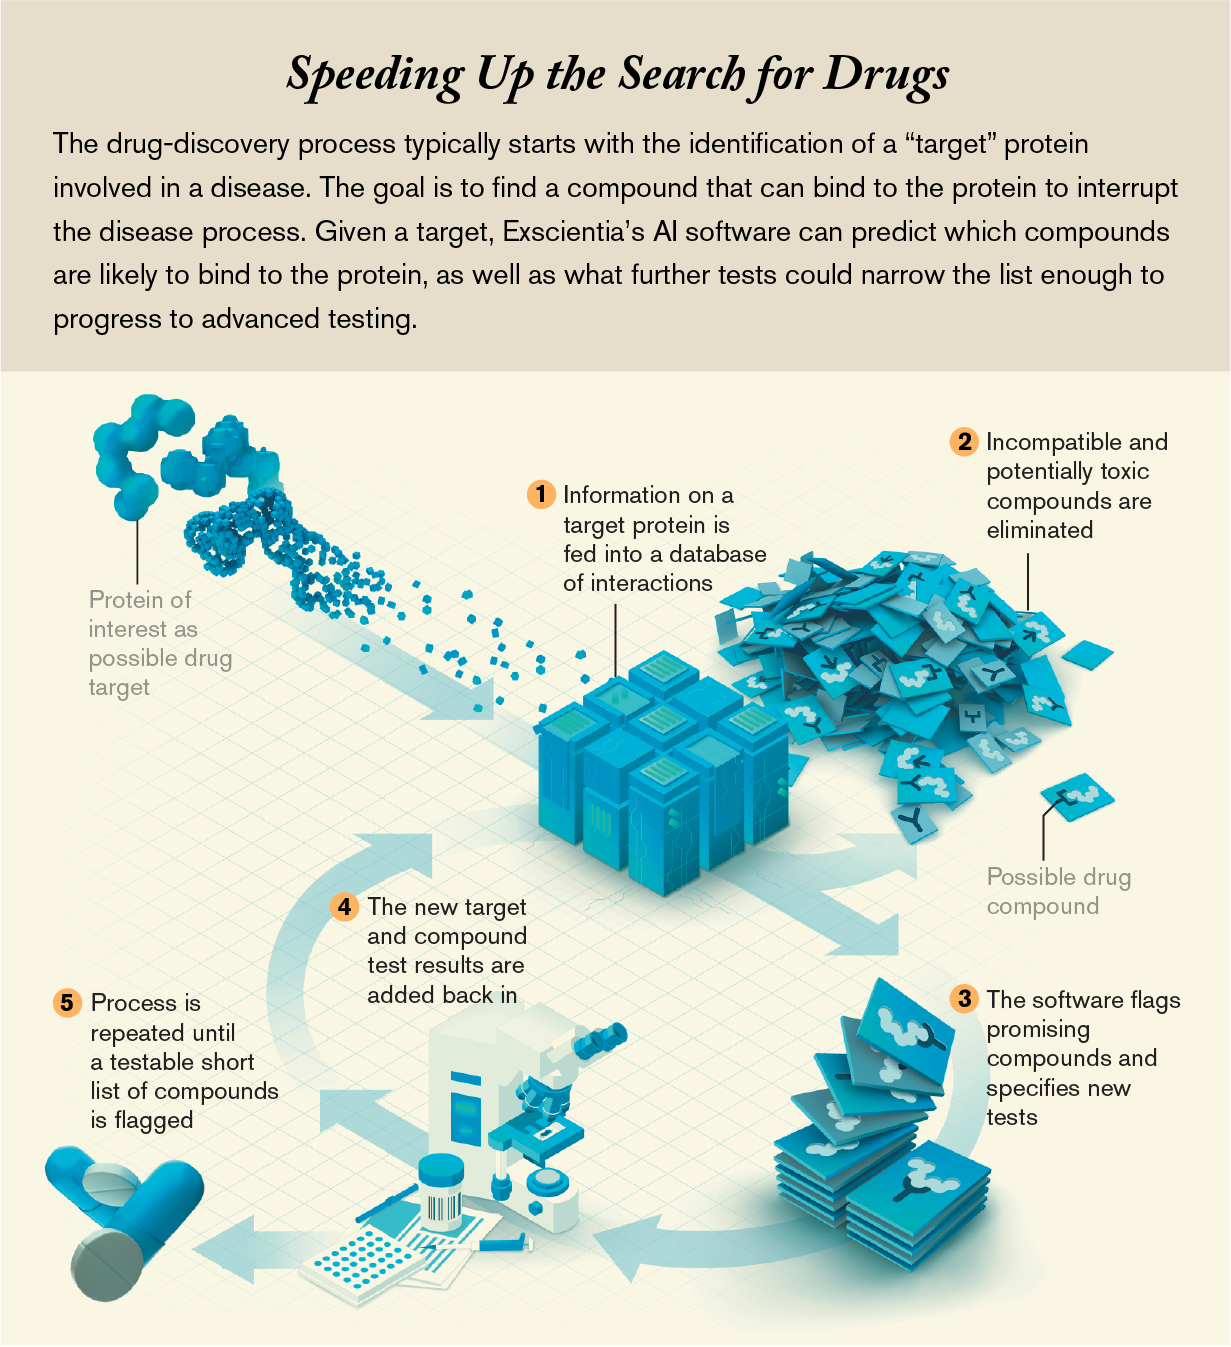 Chart: A.I. software can predict which compounds are likely to bind to a target protein, as well as recommend further tests to help narrow the list of drug candidates